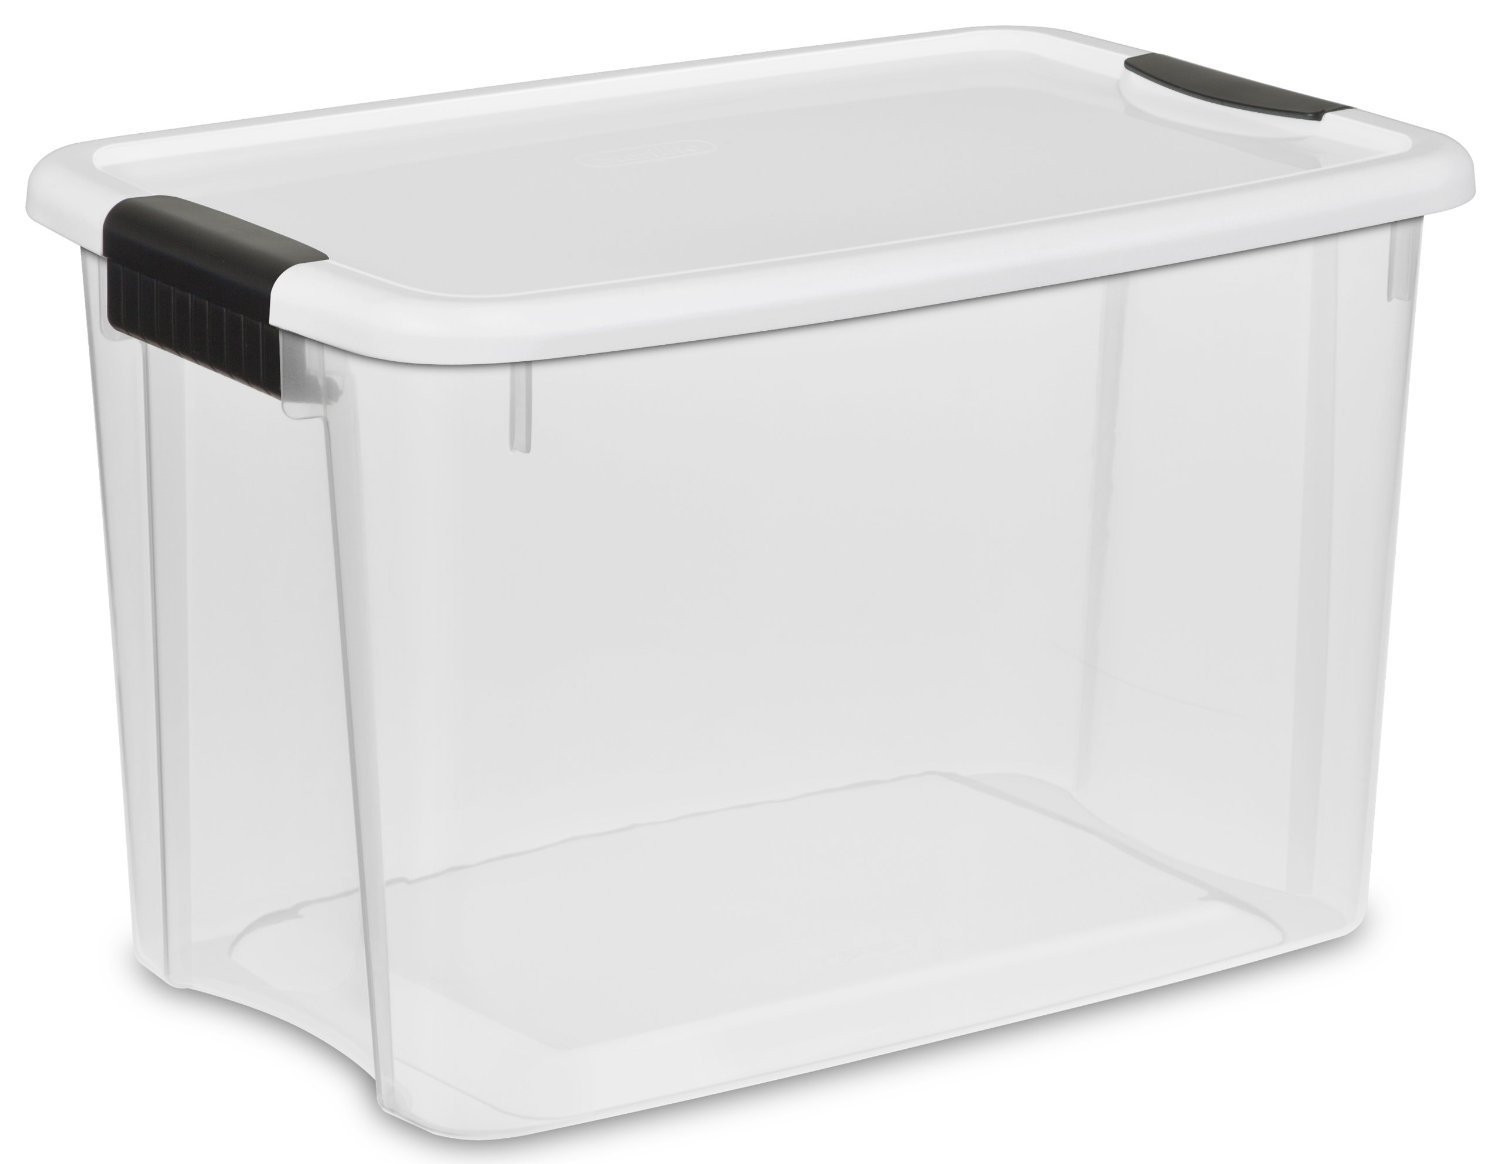 Sterilite 30 Quart Liter Storage Clear Boxes, Heavy Duty Plastic Box With Secure Latches, For Home or Office, (Pack of 4)